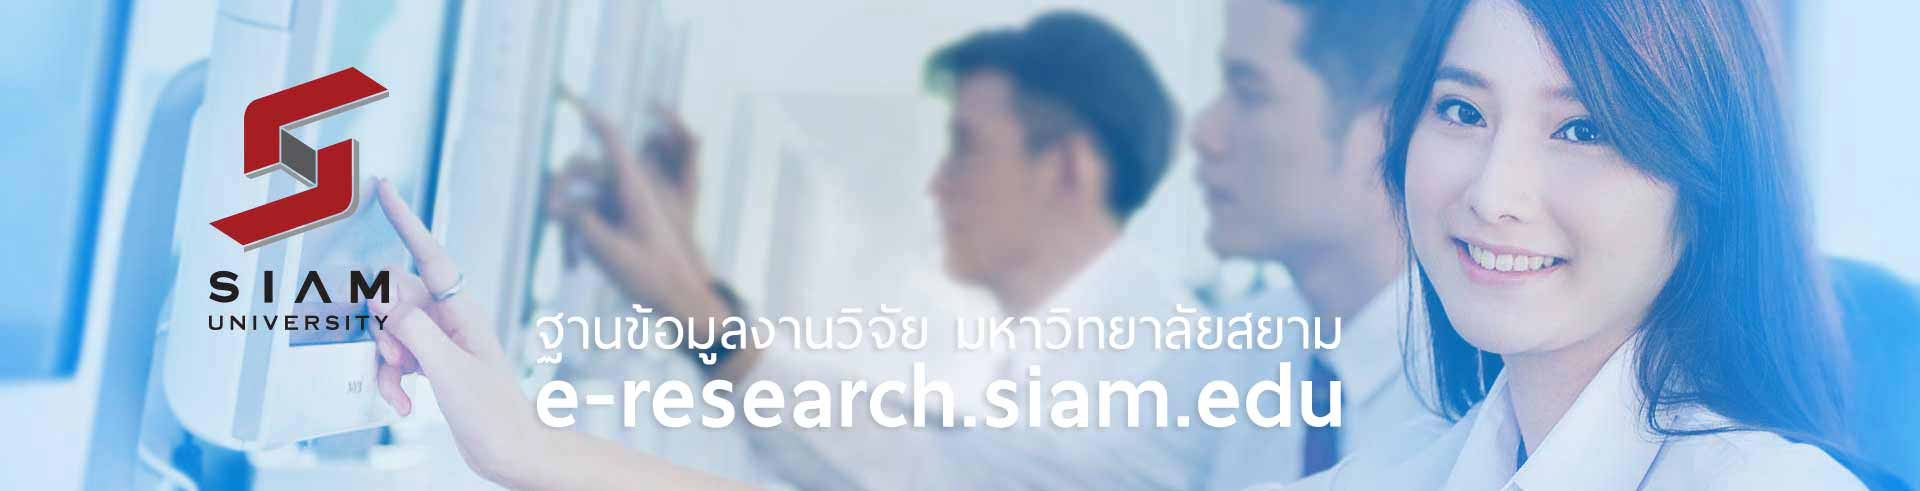 The competitive strategies of the International Program in Hotel and Tourism Management Department at Siam University case study approach - ฐานข้อมูลงานวิจัย มหาวิทยาลัยสยาม